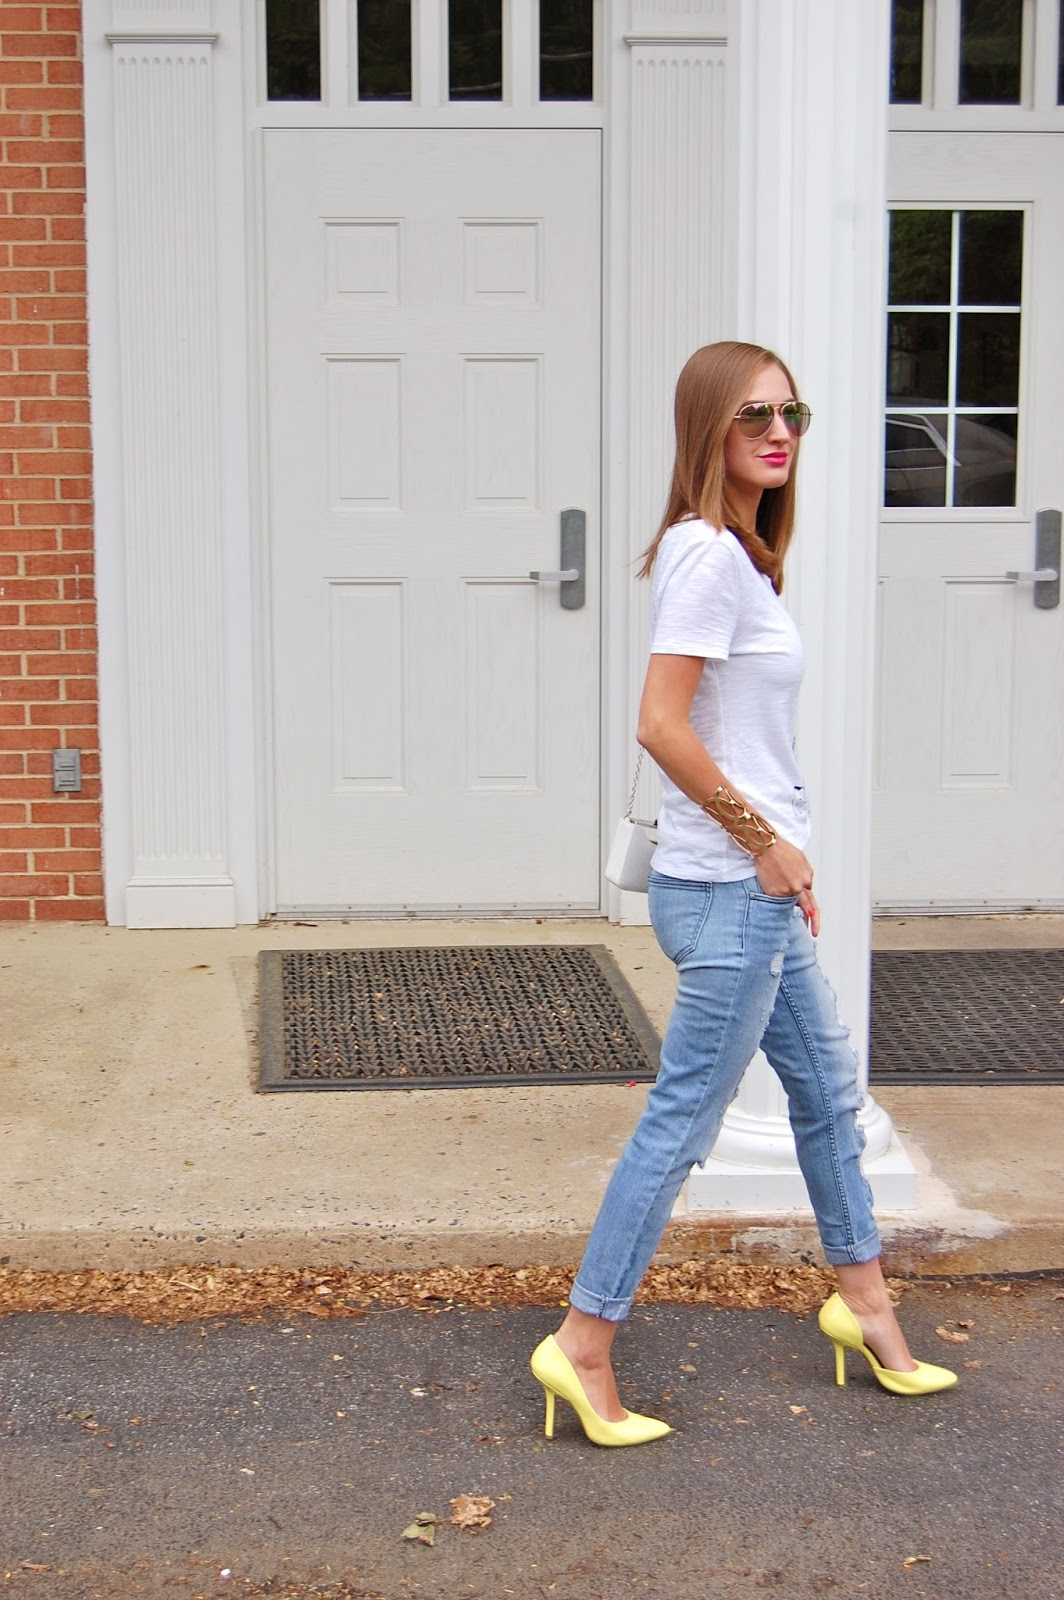 Wearing Kohl's Elle slubbed graphic tee, Nordstrom distressed boyfriend jeans, Yellow Bcbg paris Jaze d'Orsay heels, Forever21 gold scalloped cuff, Bcbg Maxazria lucite clutch